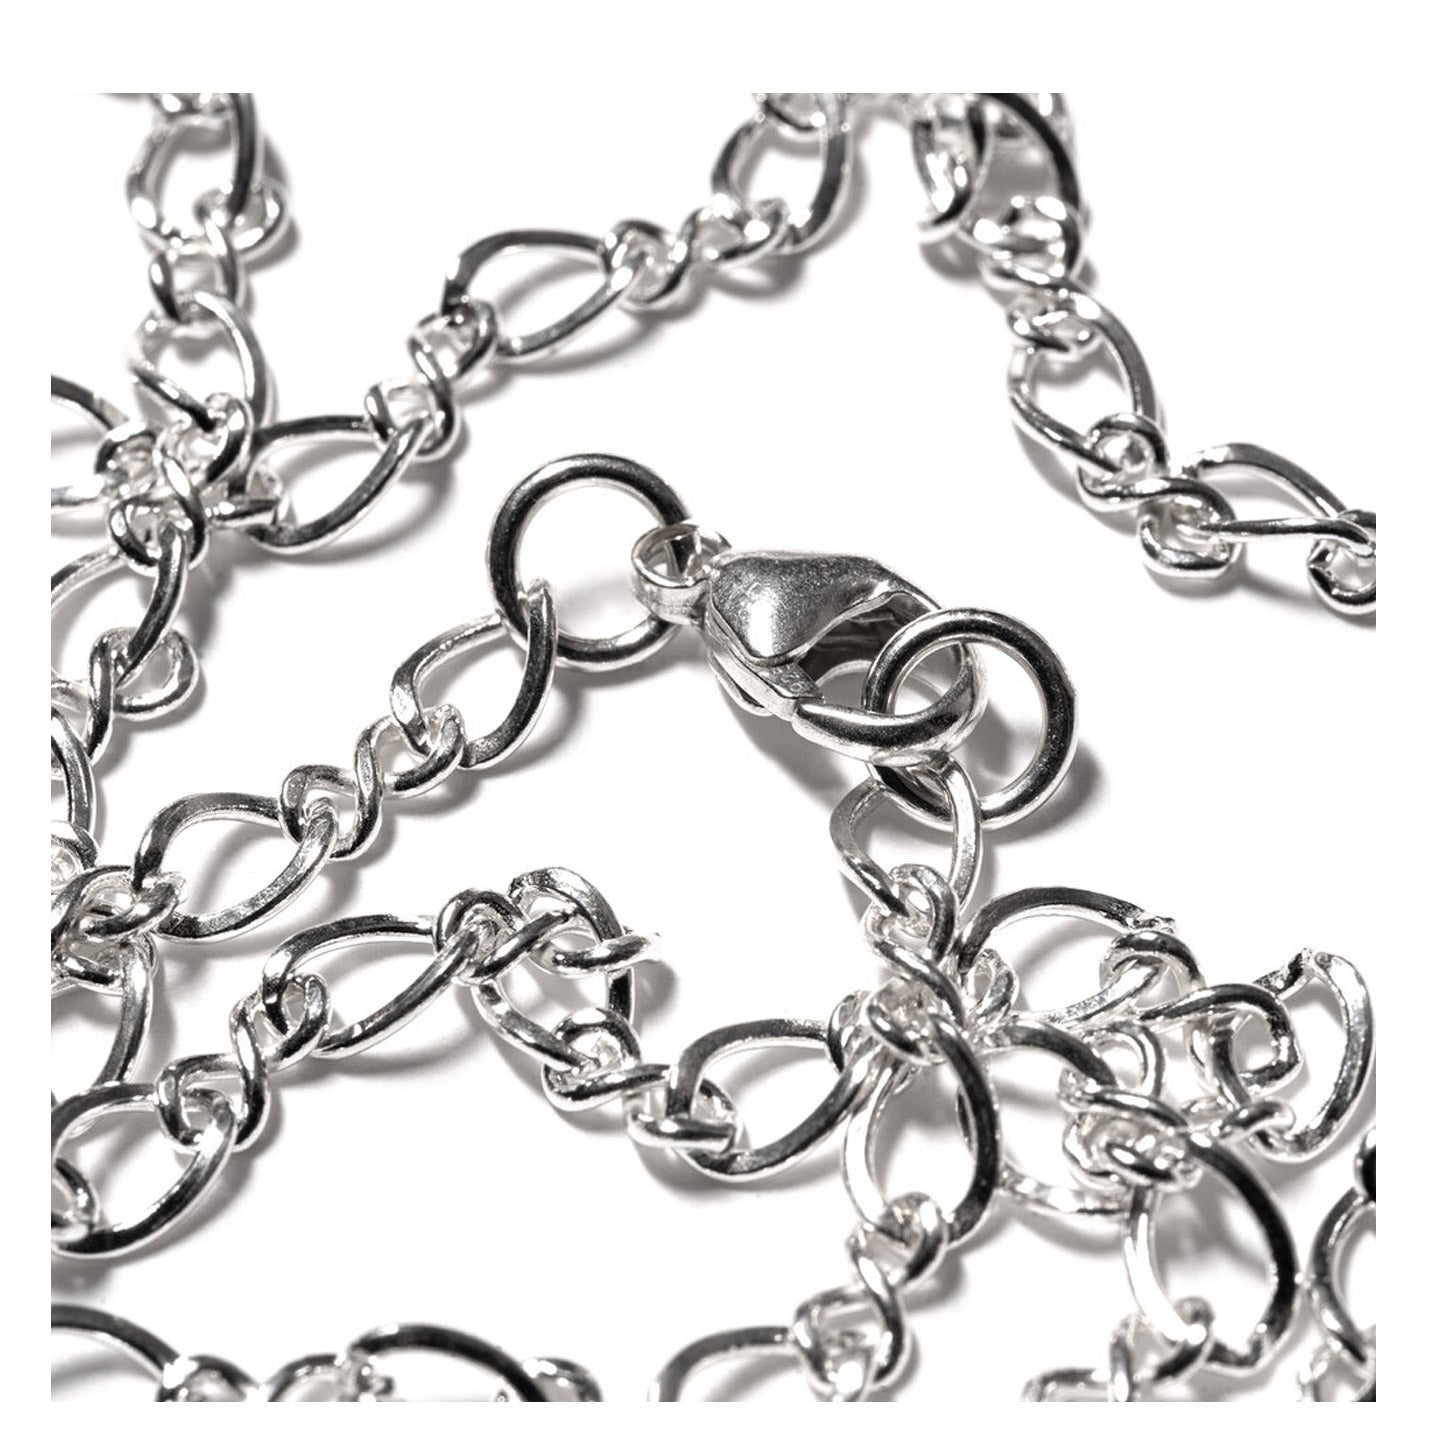 MAPLE FIGURE EIGHT CHAIN SILVER 925